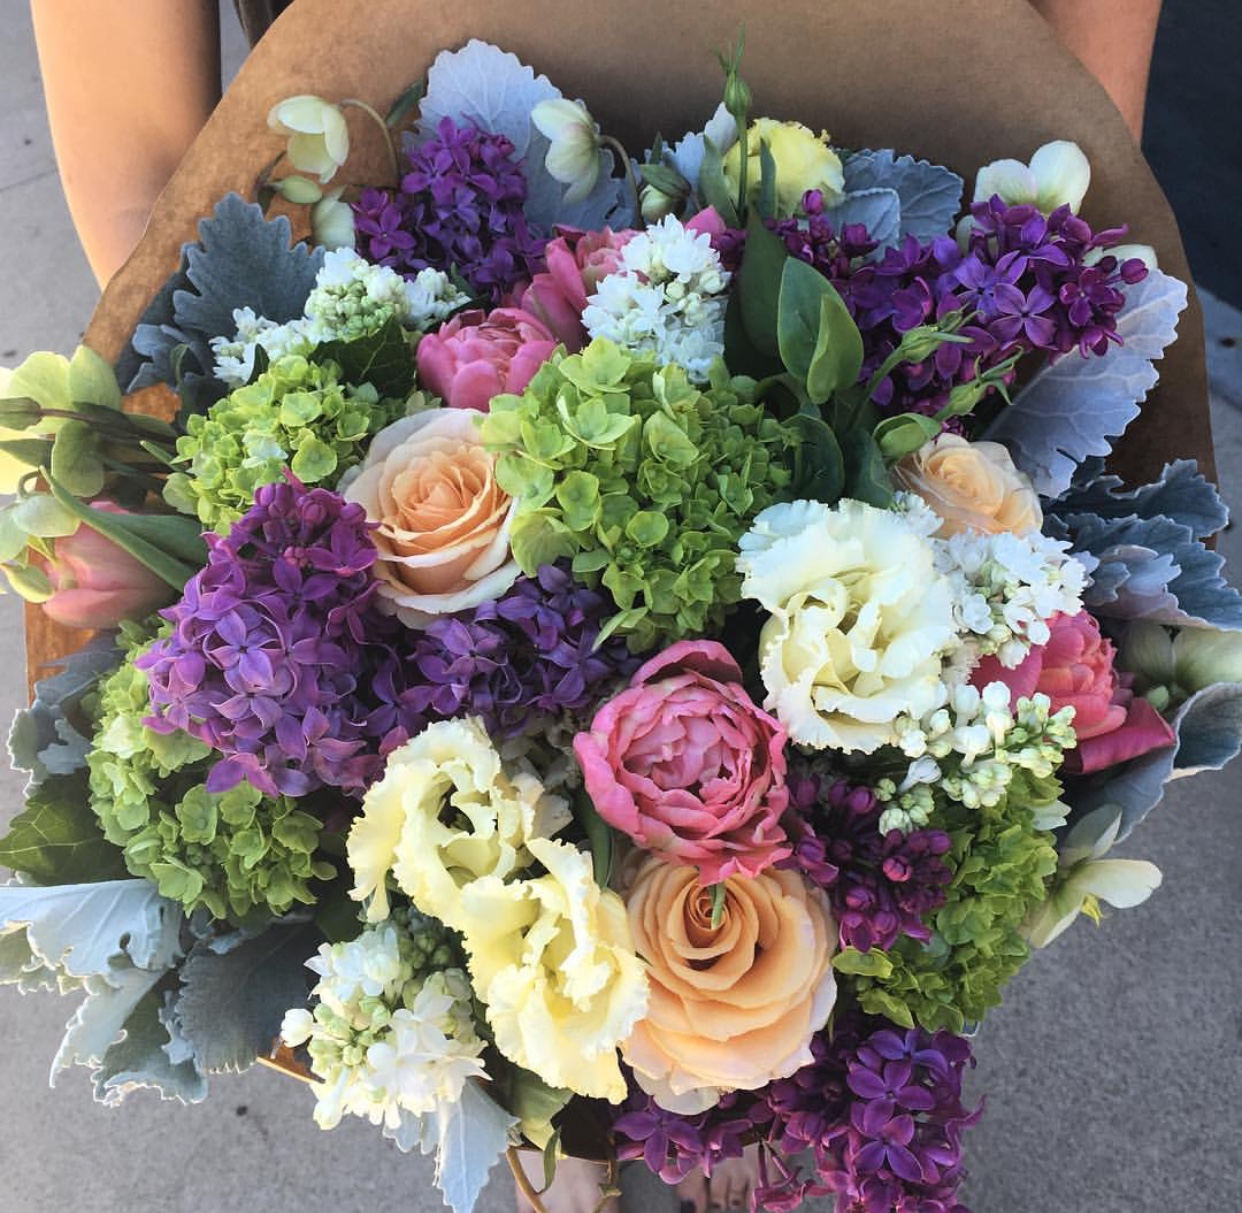 41. Mixed Wrapped Arrangement